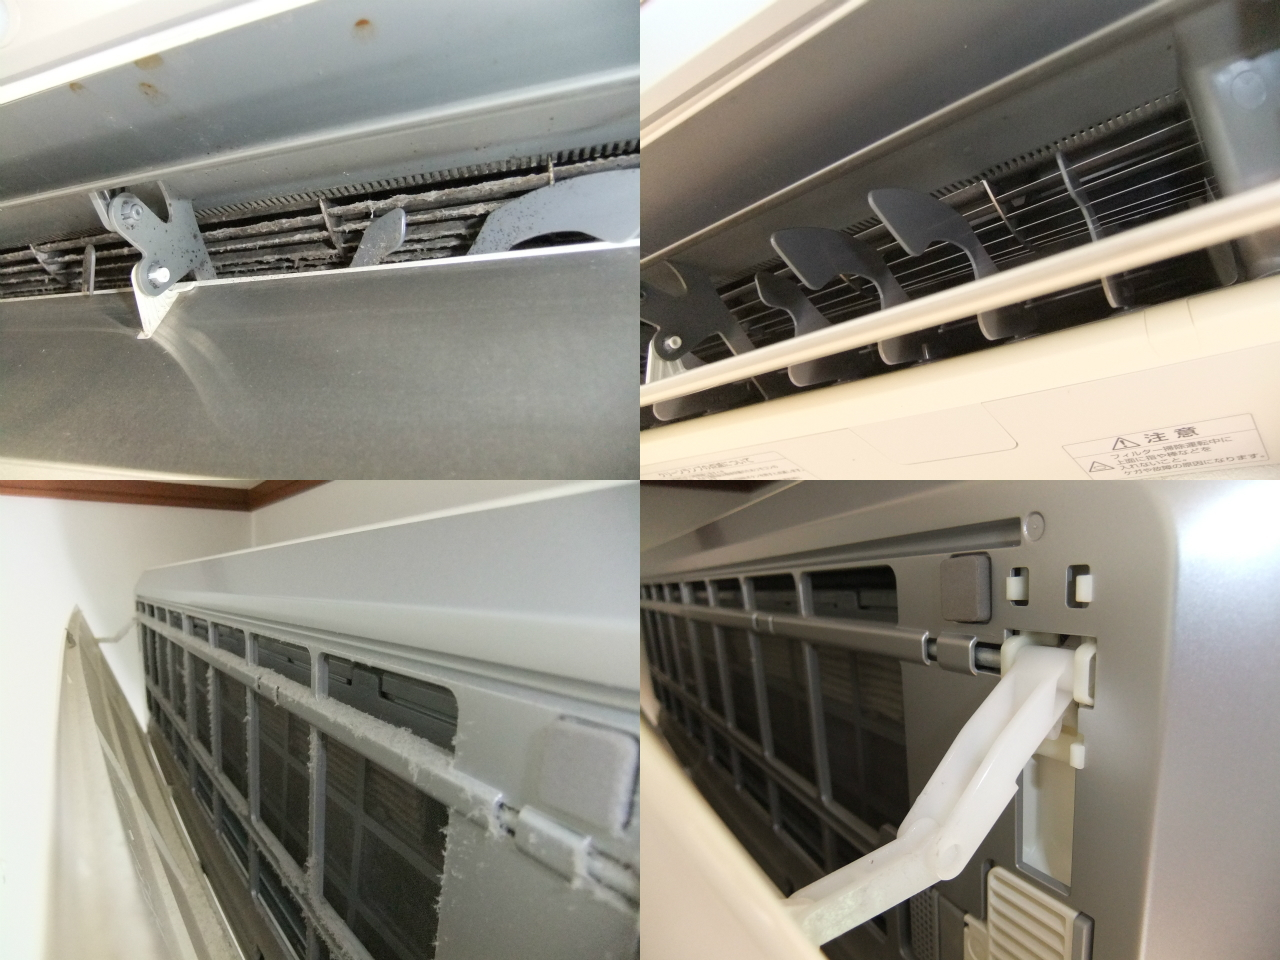 http://ajras.net/images/120614-aircon1.jpg